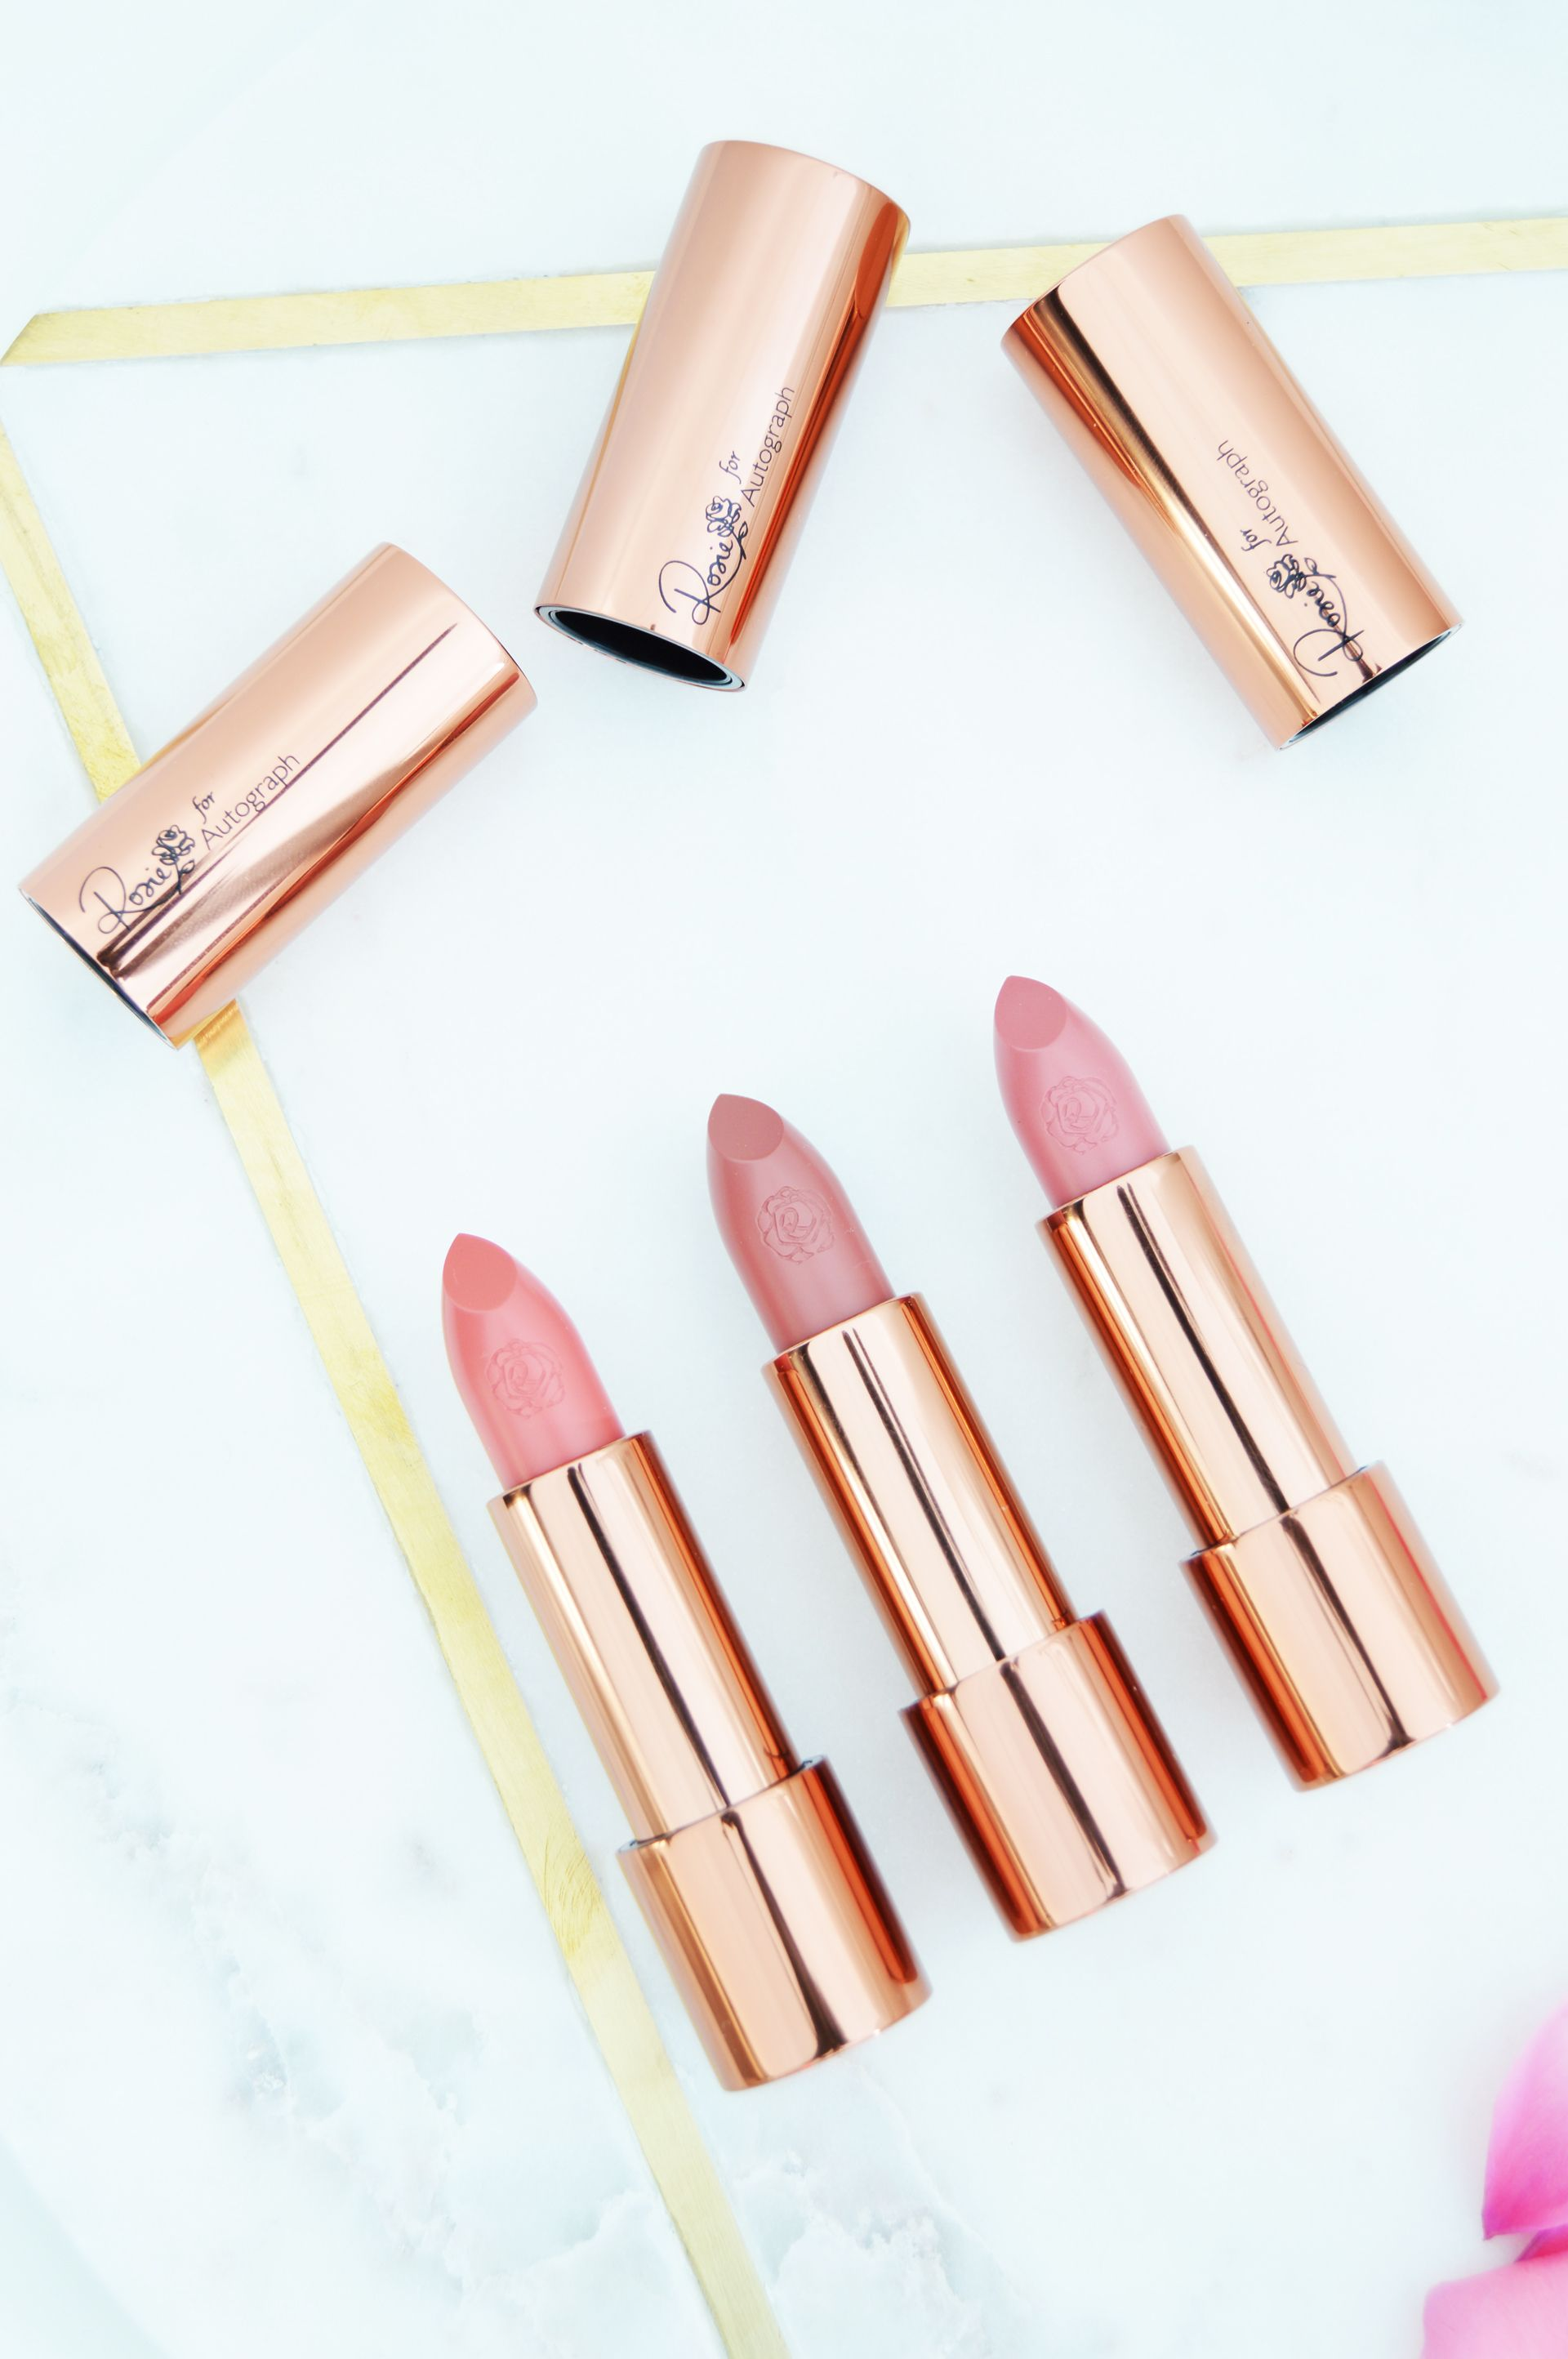 Rosie for Autograph Lipsticks Review and Swatches